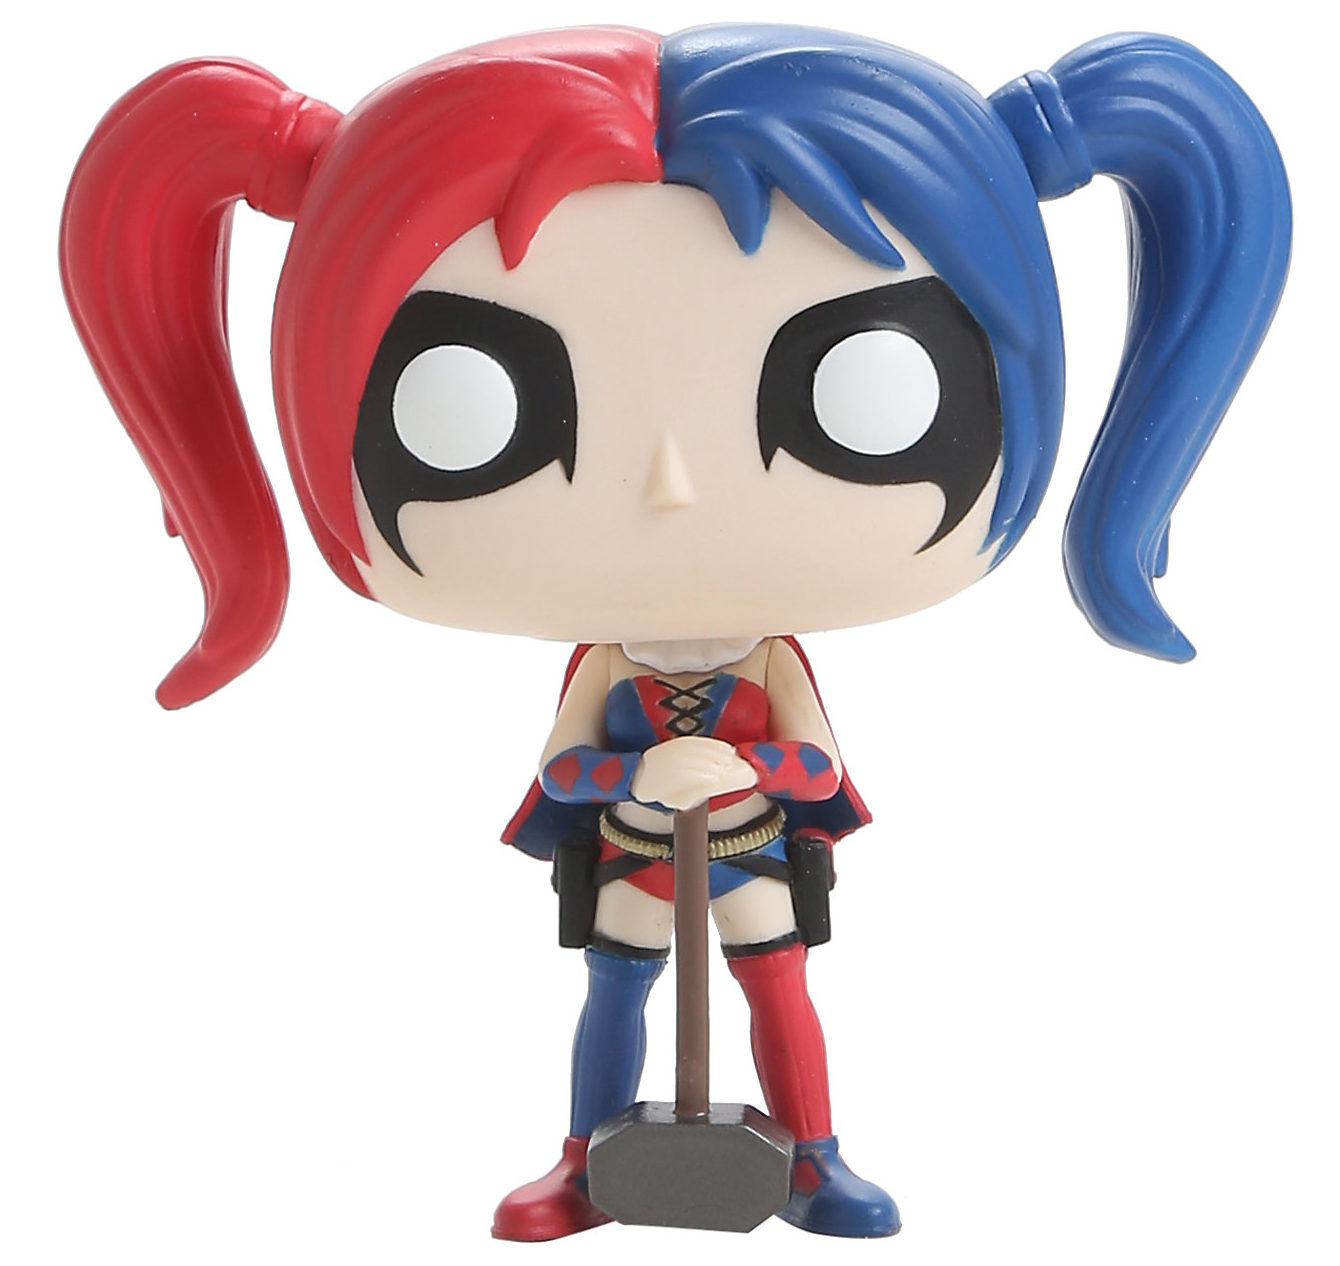 Harley quinn new 52 clipart clip transparent Who Needs A Harley? New 52 Harley Quinn Hot Topic Exclusive ... clip transparent